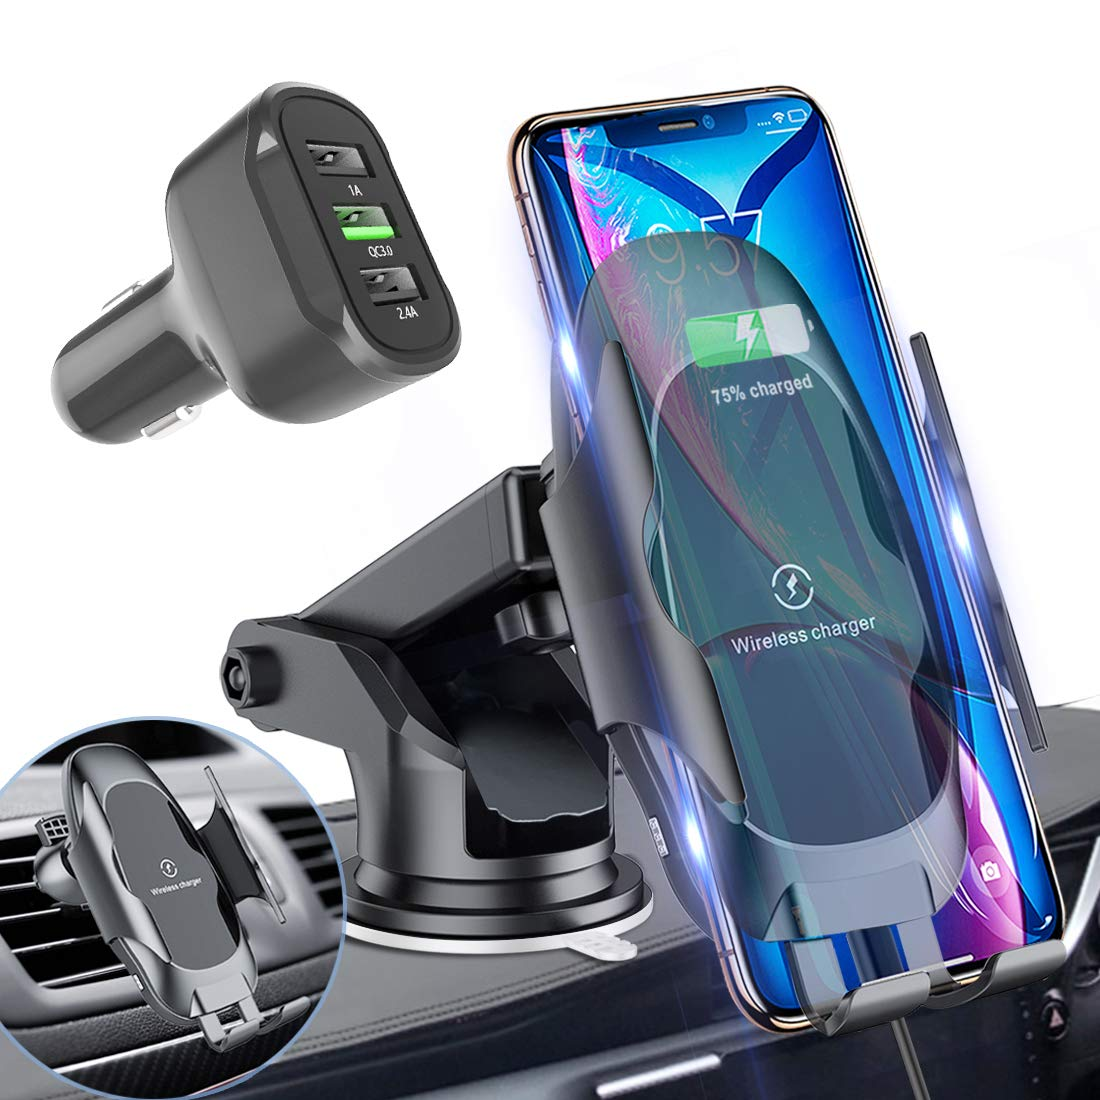 Homder Automatic Clamping Wireless Car Charger Mount,10W/7.5W Qi Fast Car Charging,Dashboard Air Vent Phone Holder with QC 3.0 Fast Charger,Compatible with Samsung S10/S9/Note 9,iPhone8/Max/X/XR by Homder